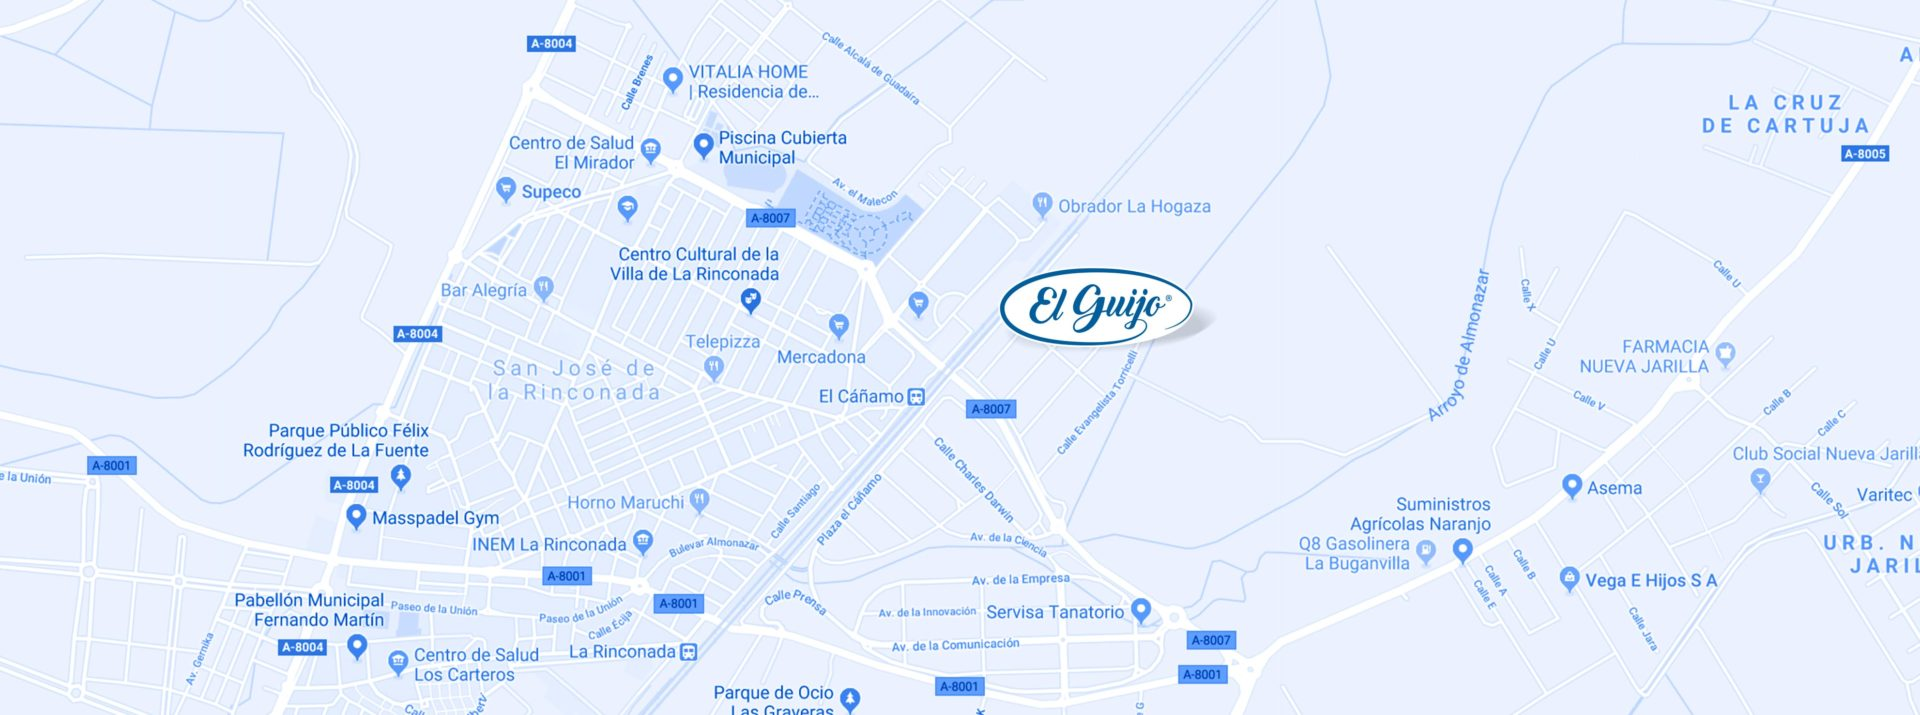 dulces-guijo-google-maps